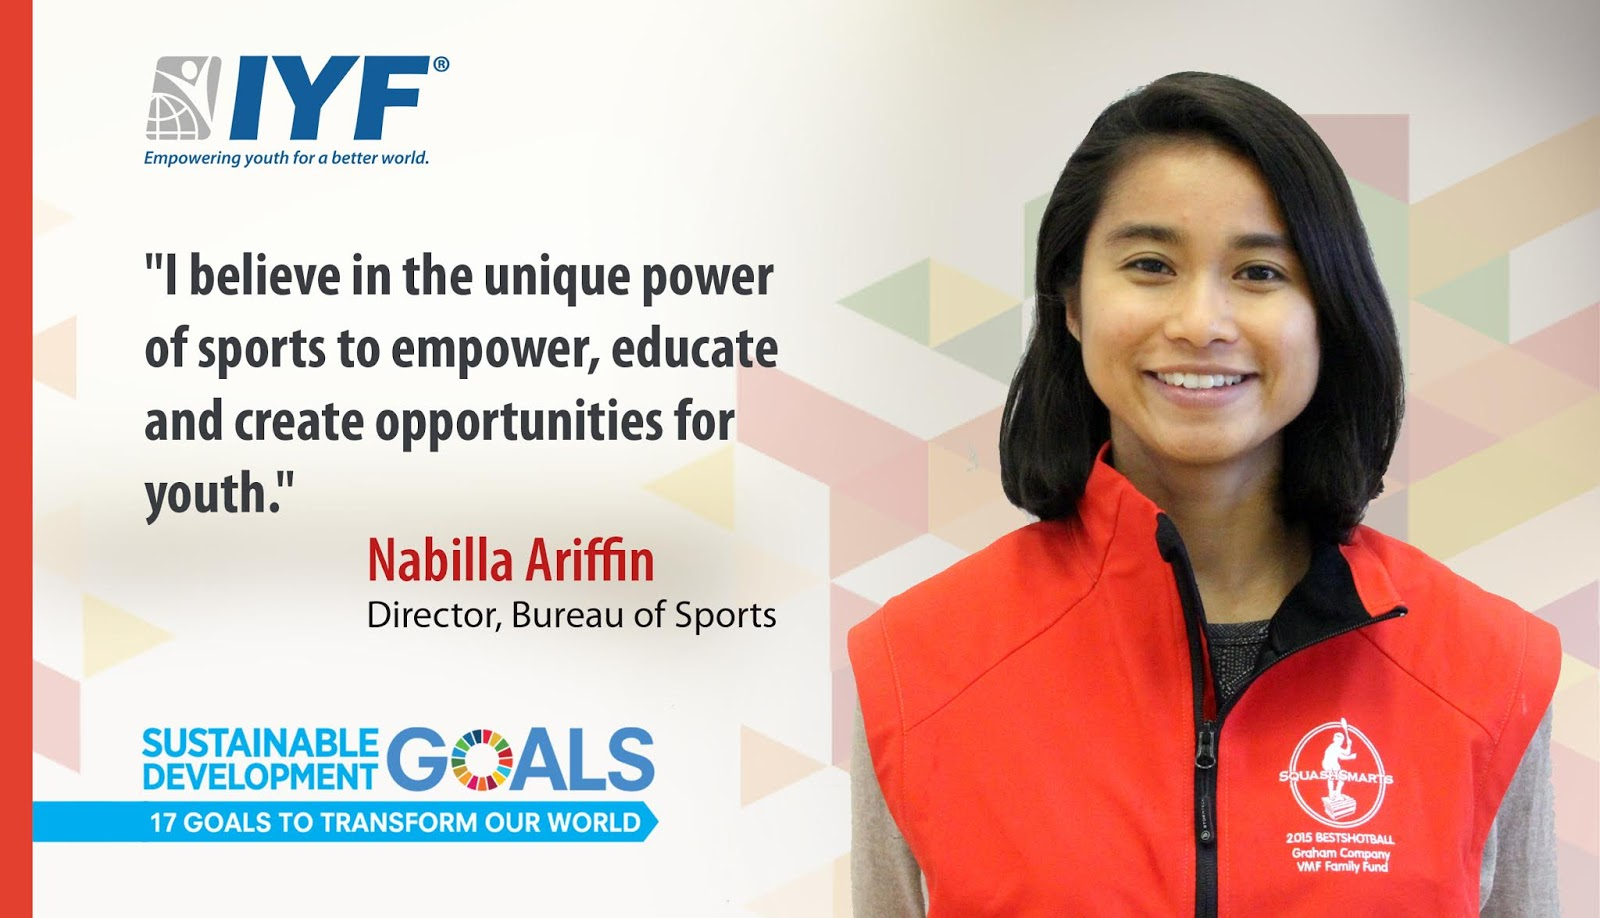 Nabilla Ariffin, IYF Director Bureau of Sports